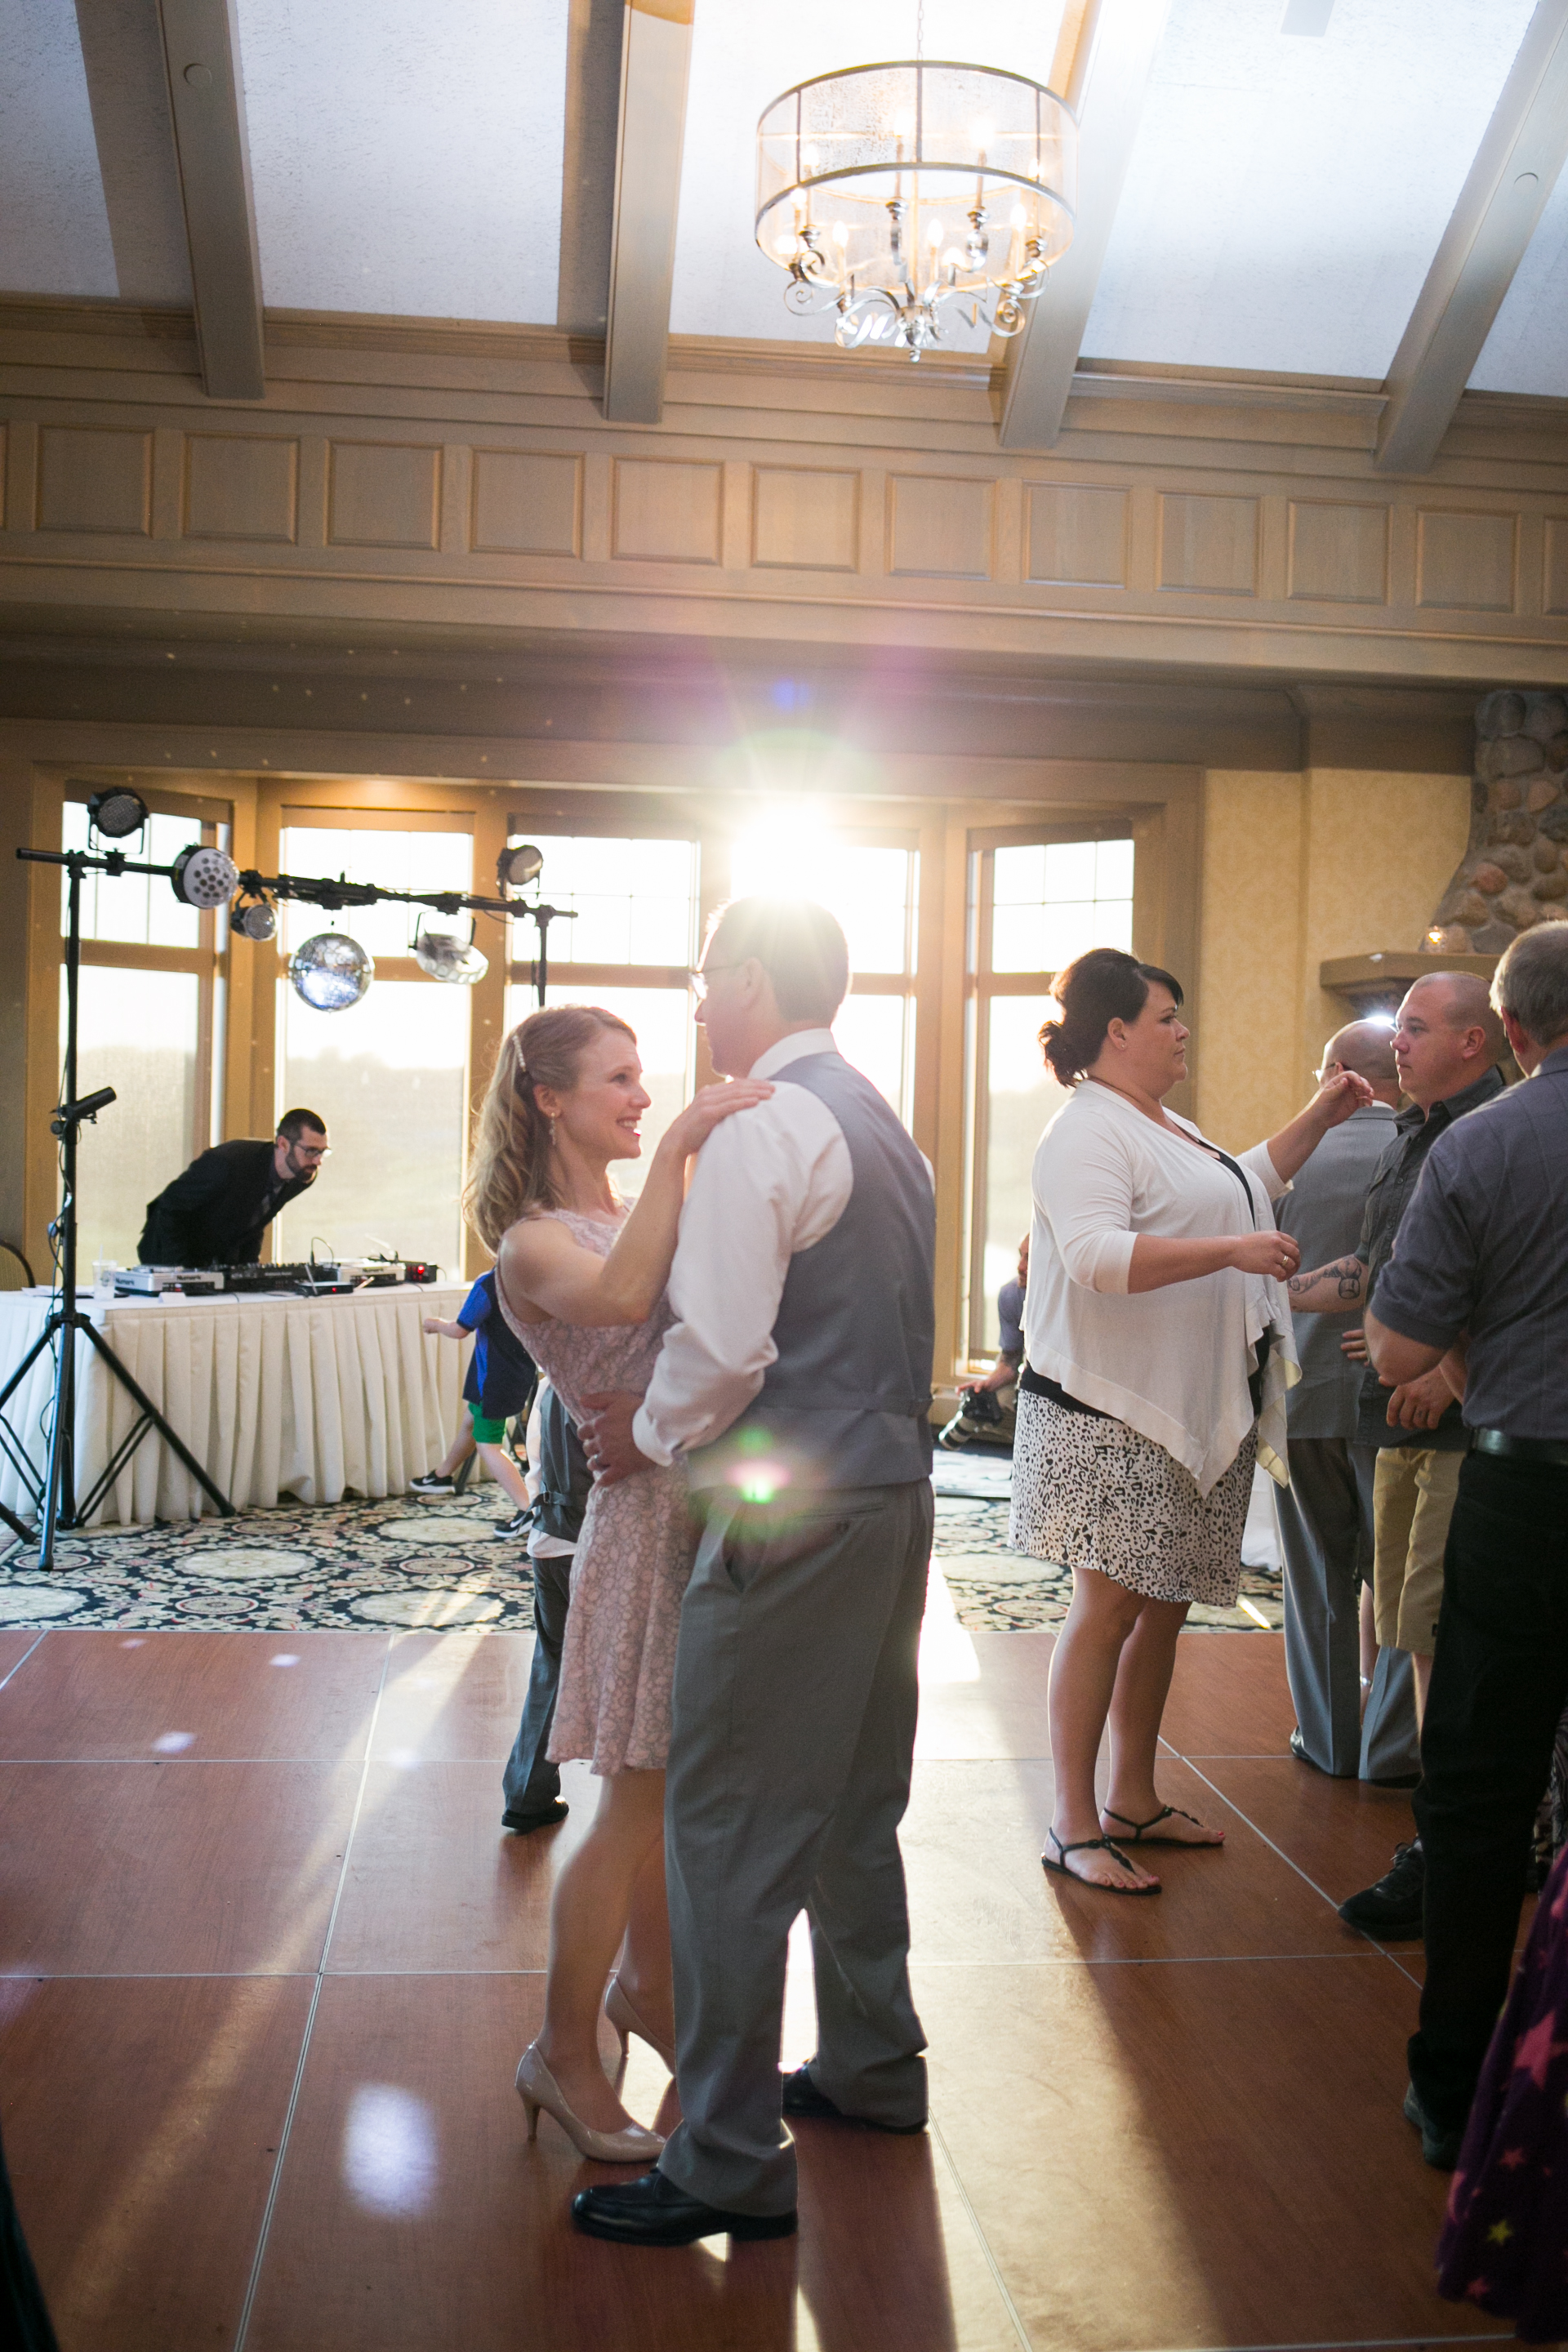 Rush Creek Golf Club Maple Grove MN Wedding (39 of 46).jpg